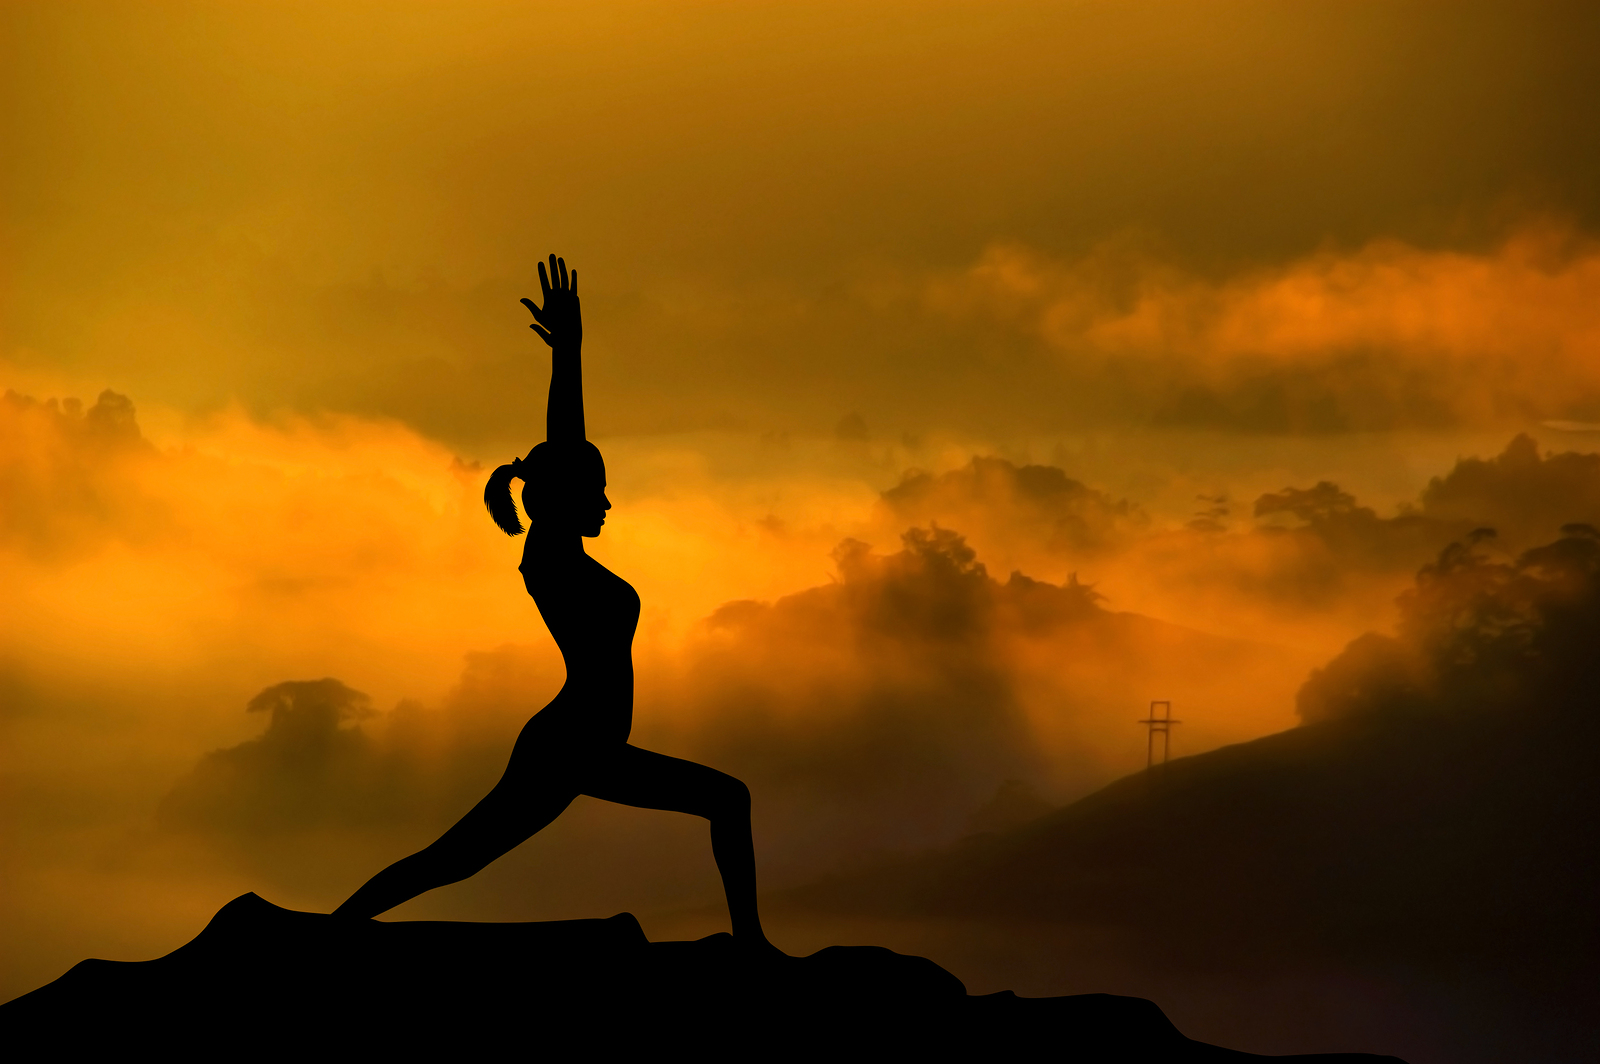 happy international yoga day 2016 hd wallpapers banners covers pictures